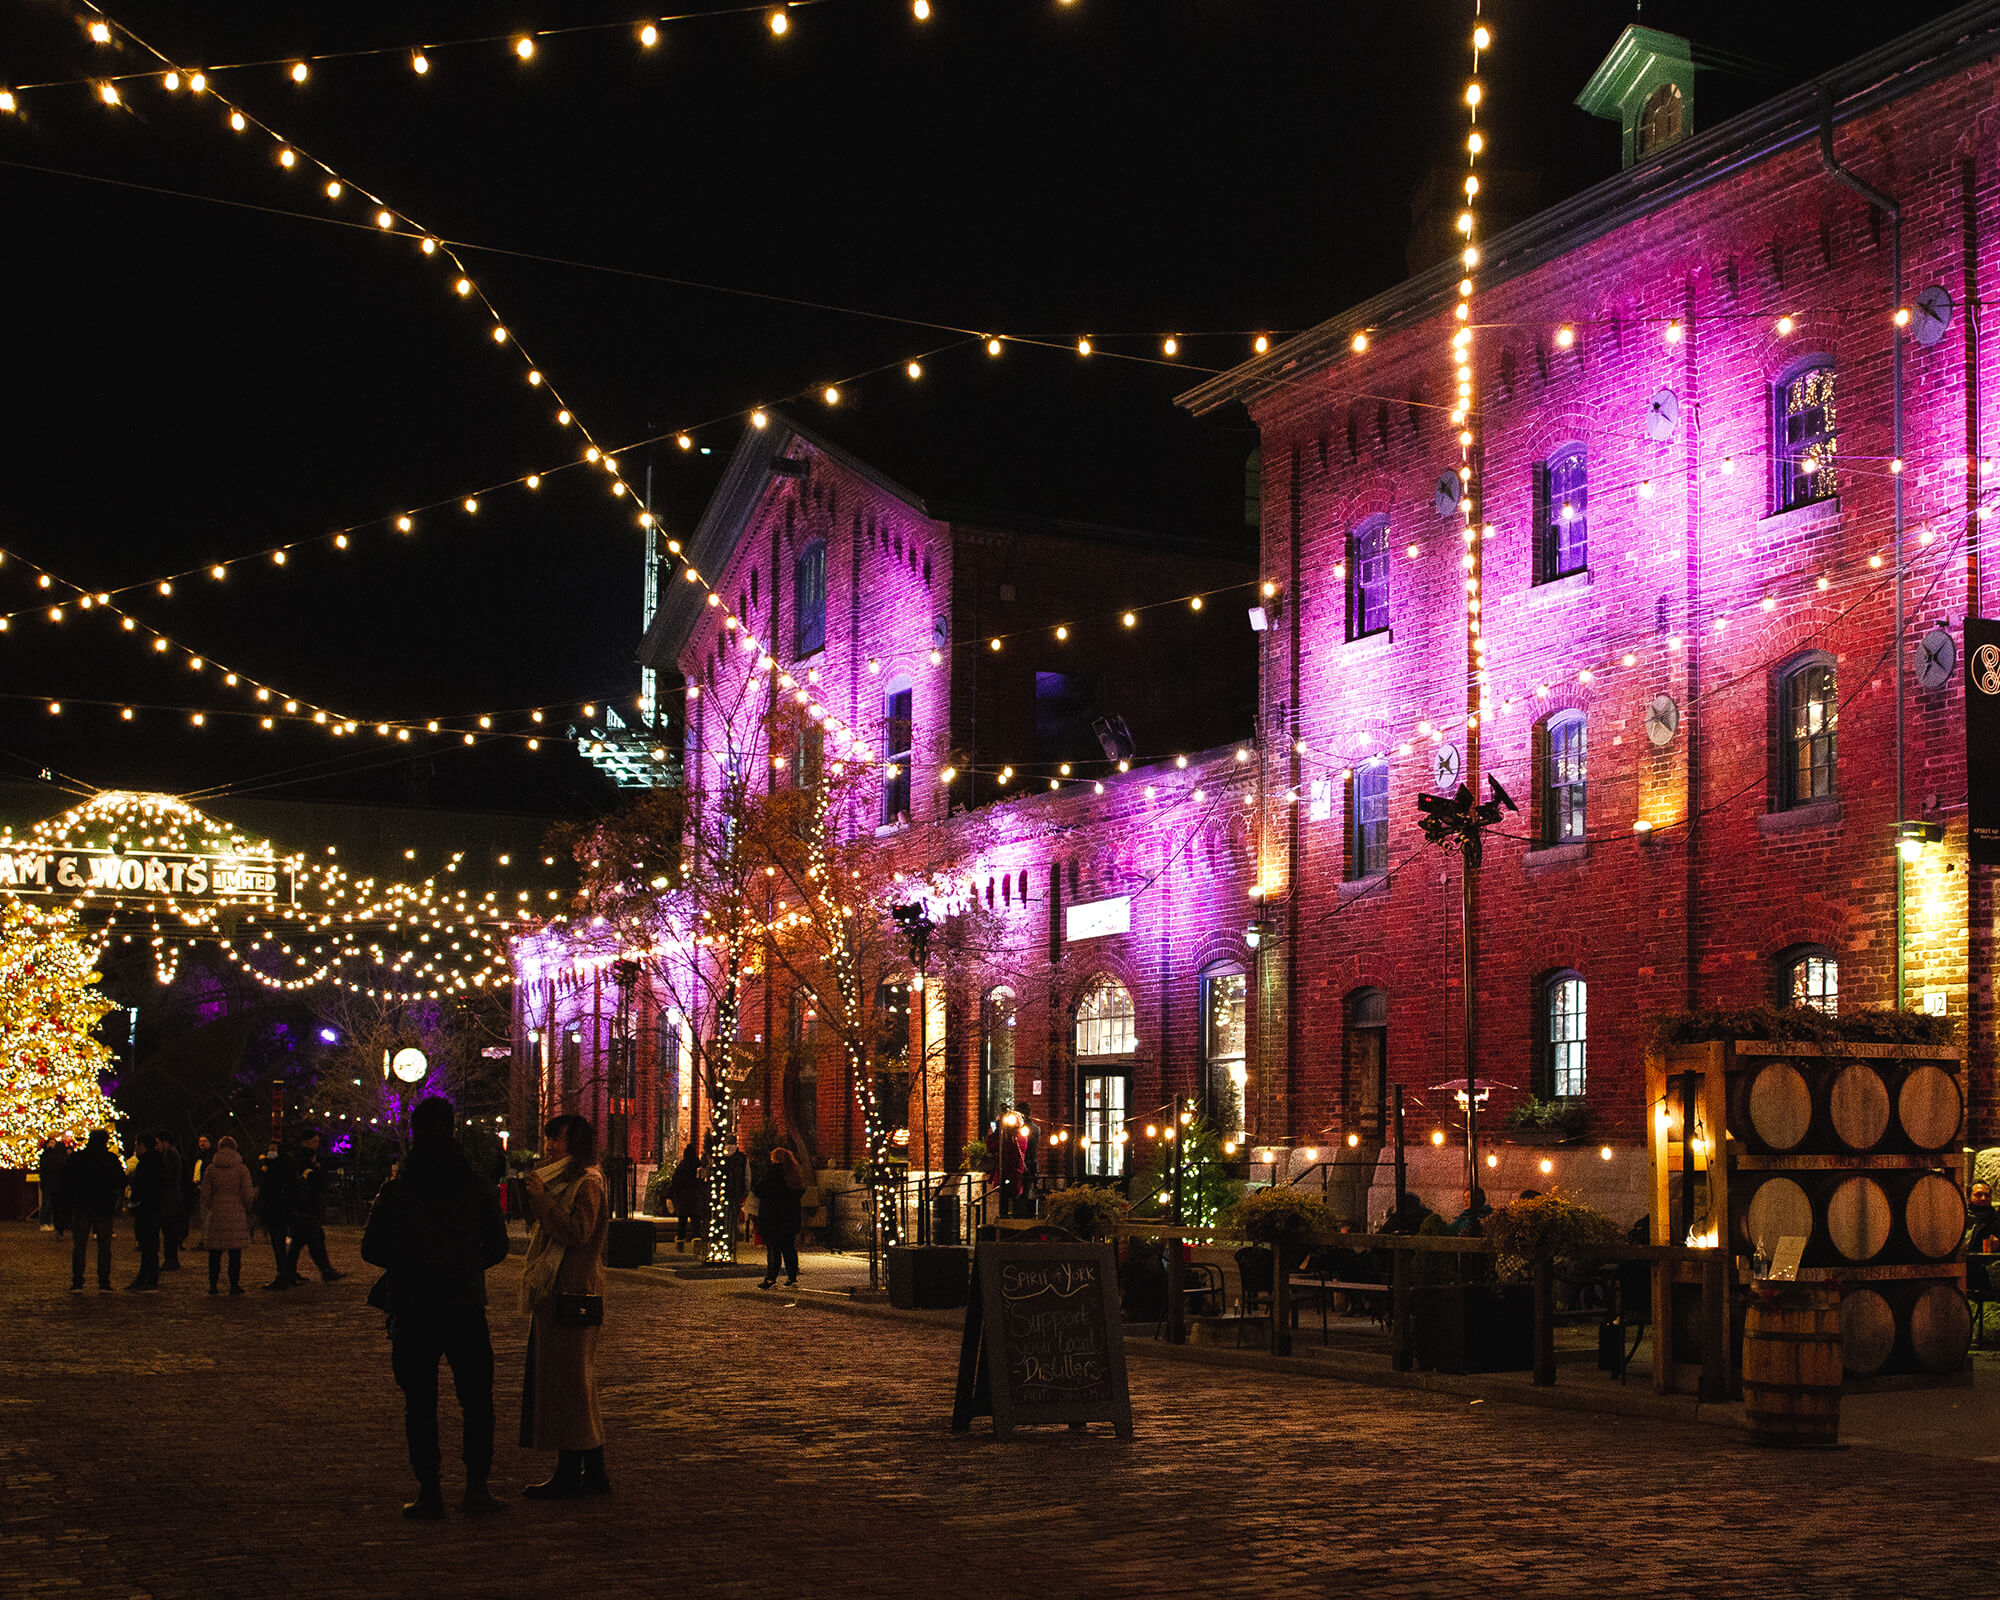 Nighttime image of the distillery district's 2020 Winter Village celebration with Christmas lights hanging over the space and people walking by